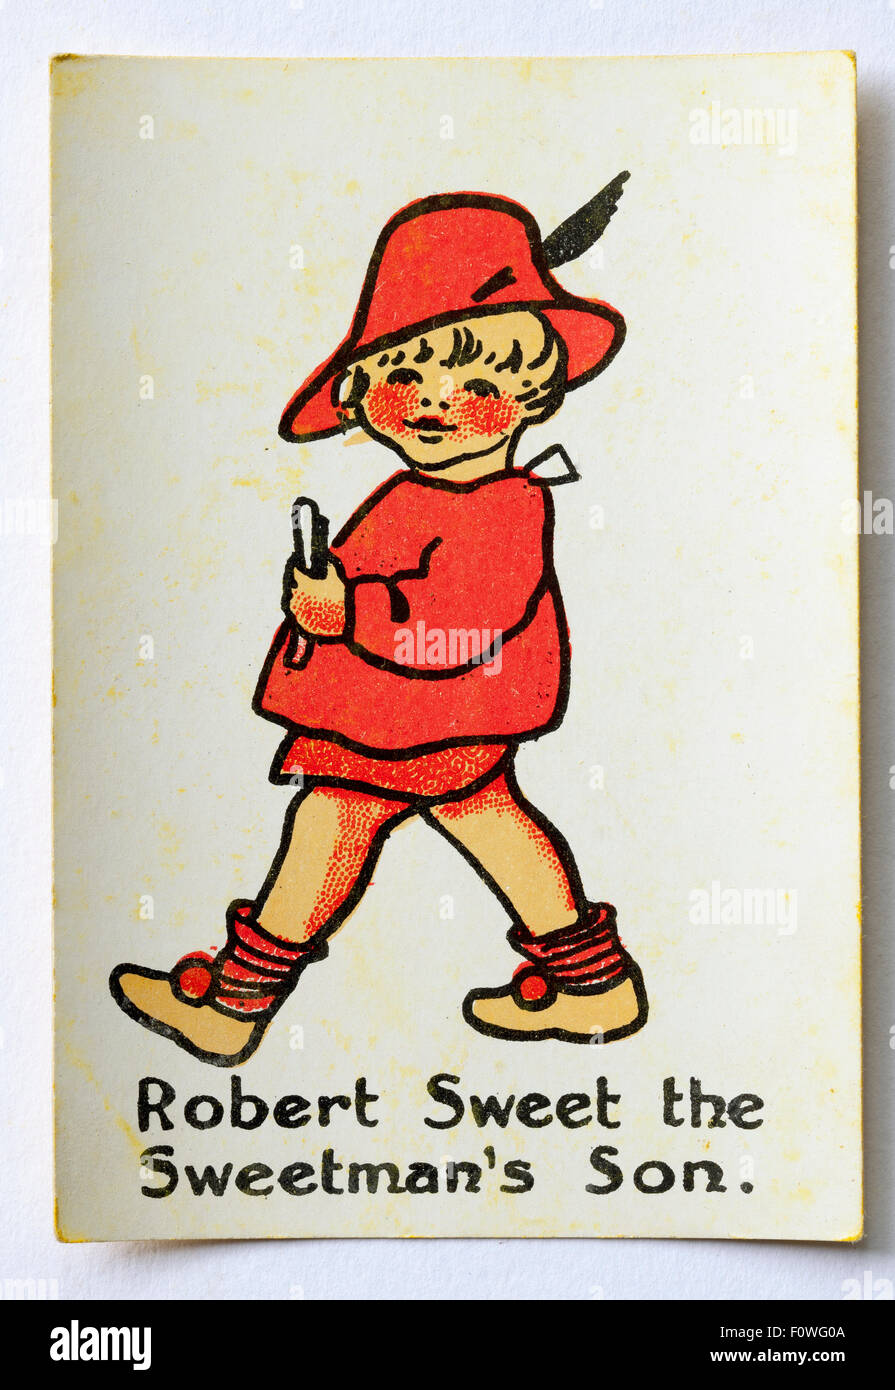 Robert Sweet the Sweetmans Son from pack Happy Familes Playing Cards - Stock Image